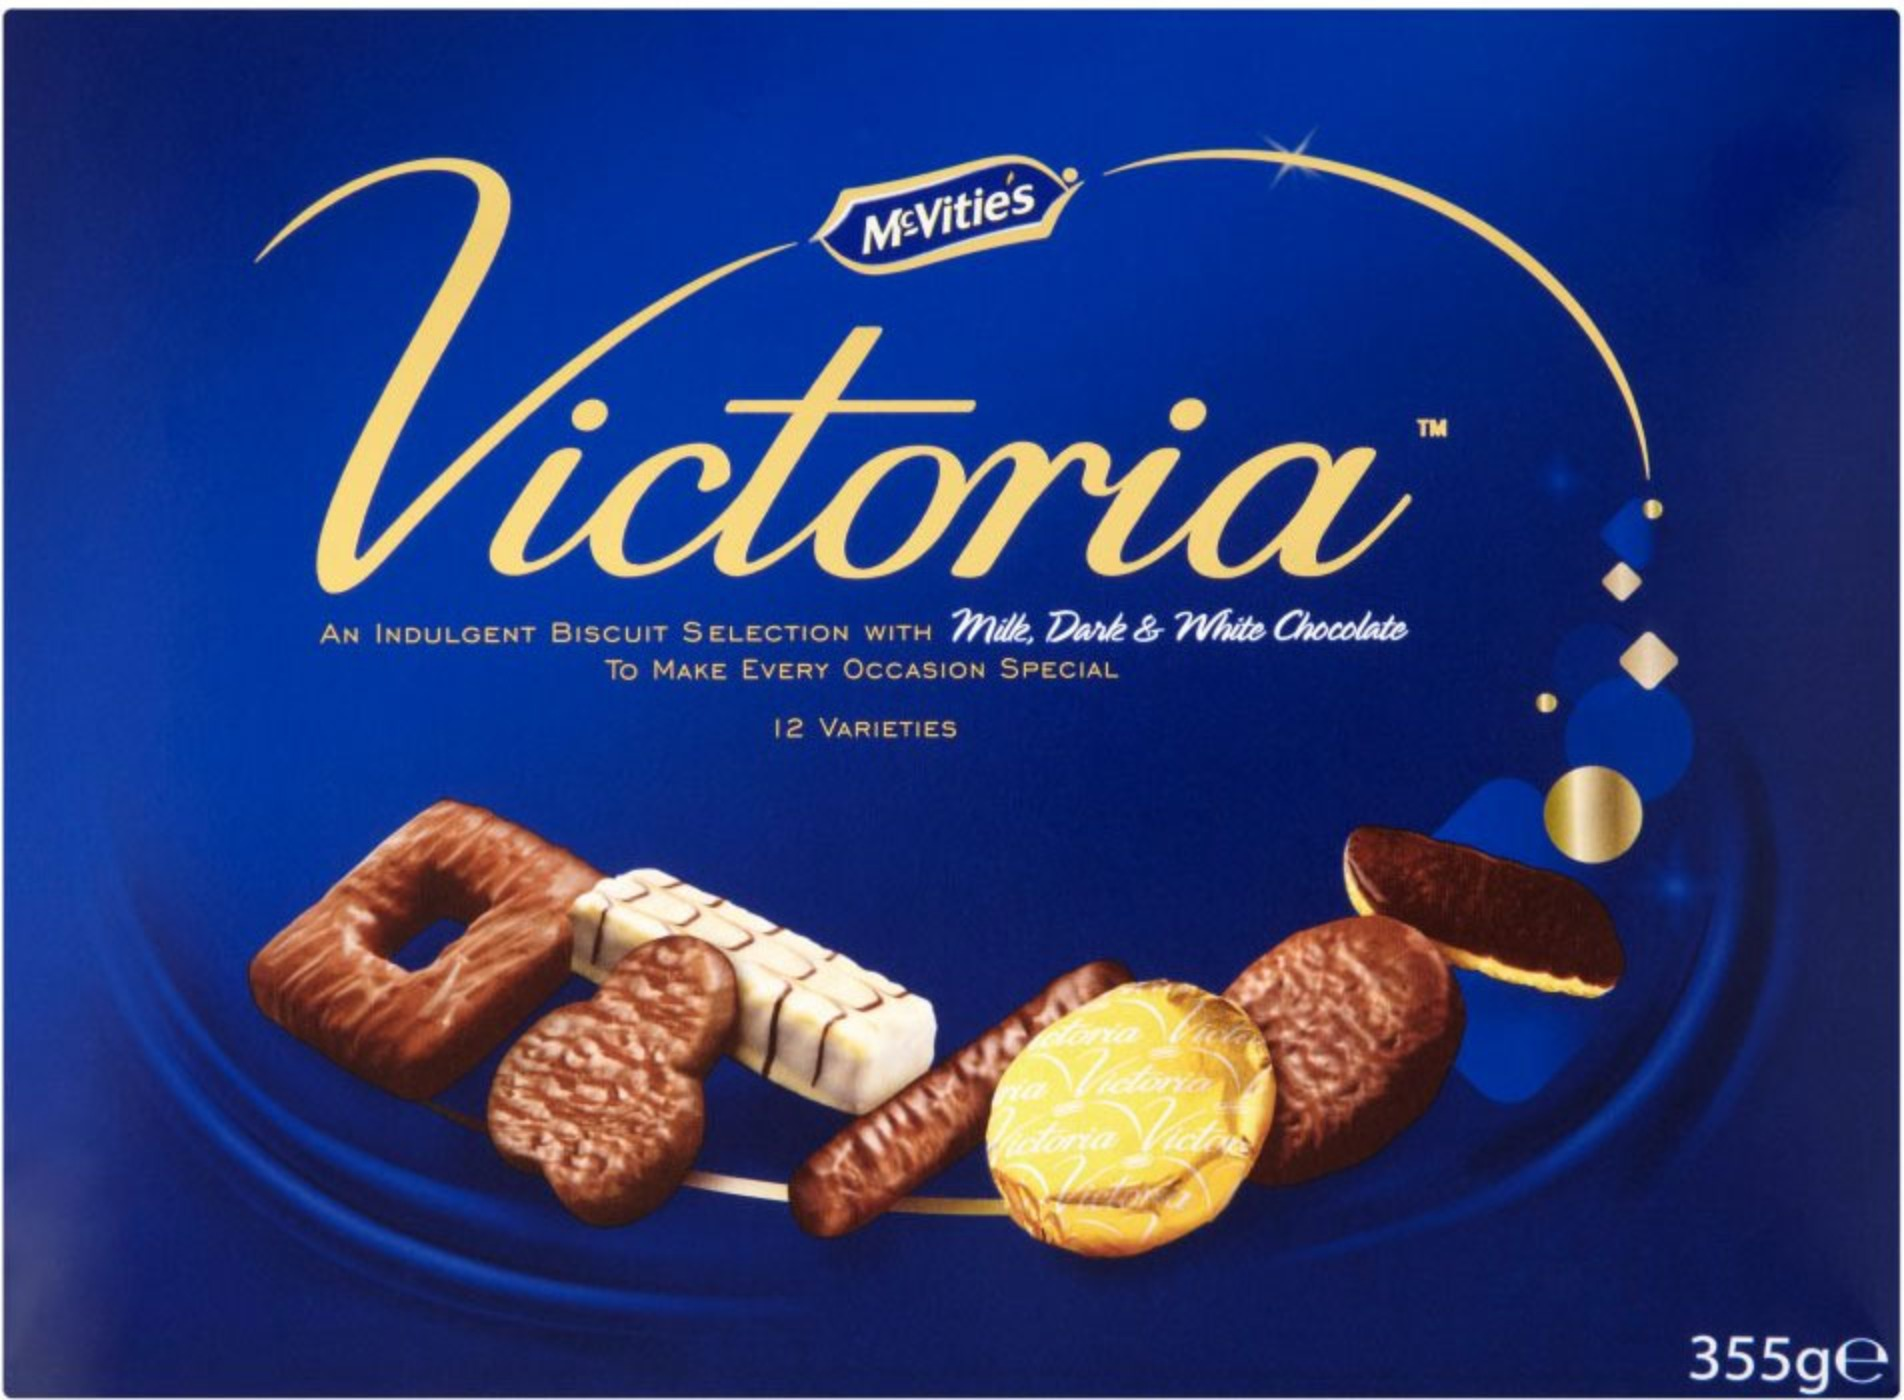 Mcvities Victoria Biscuit Selection 1x825g